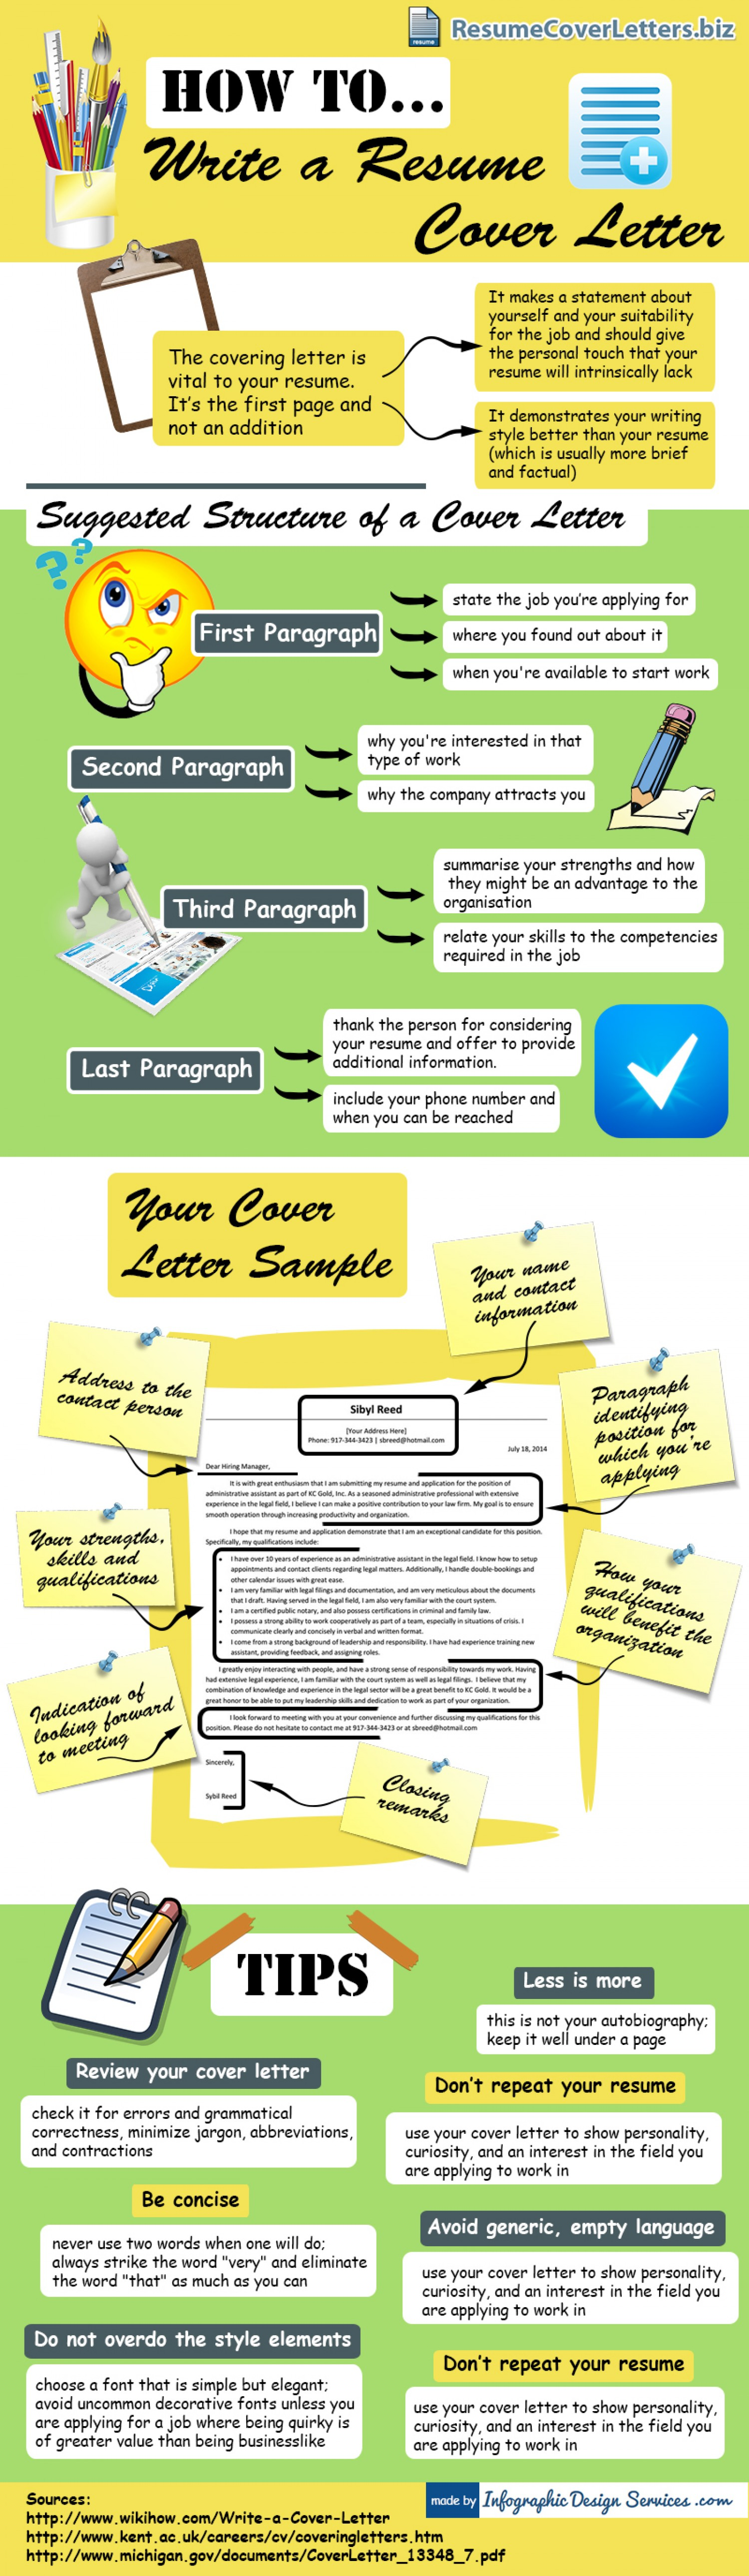 Resume Cover Letter Writing Tips Infographic Resume Builder